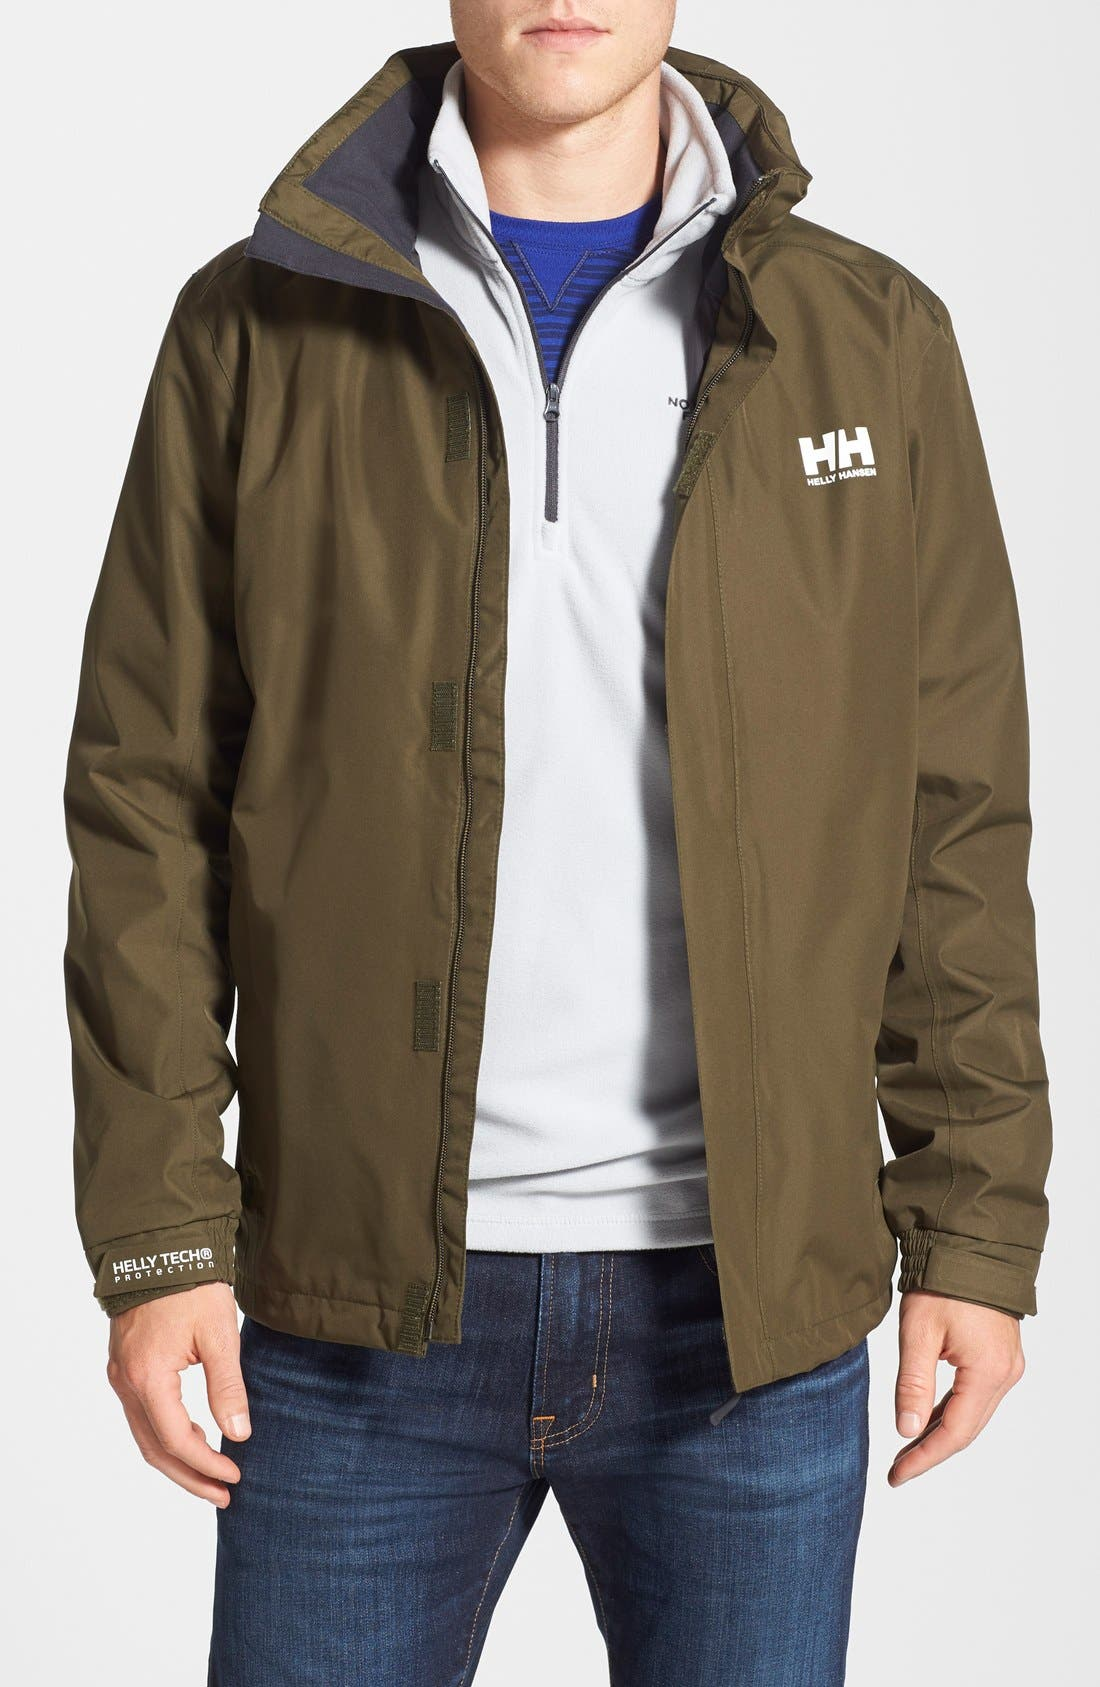 Alternate Image 1 Selected - Helly Hansen 'Dubliner' Waterproof Jacket